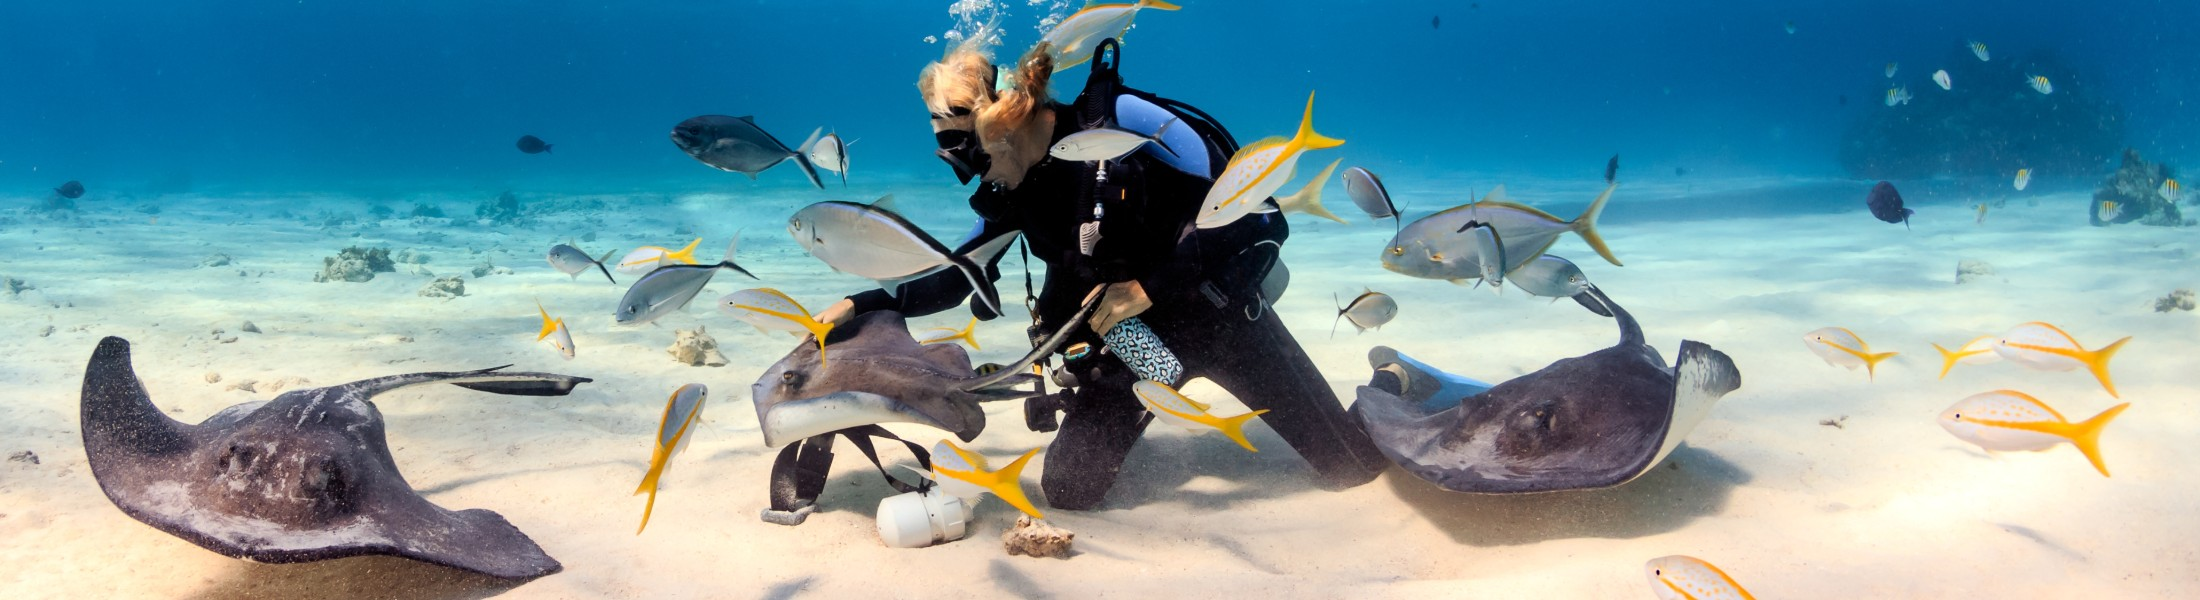 Man Scuba diving surrounded by stingrays in the Caribbean